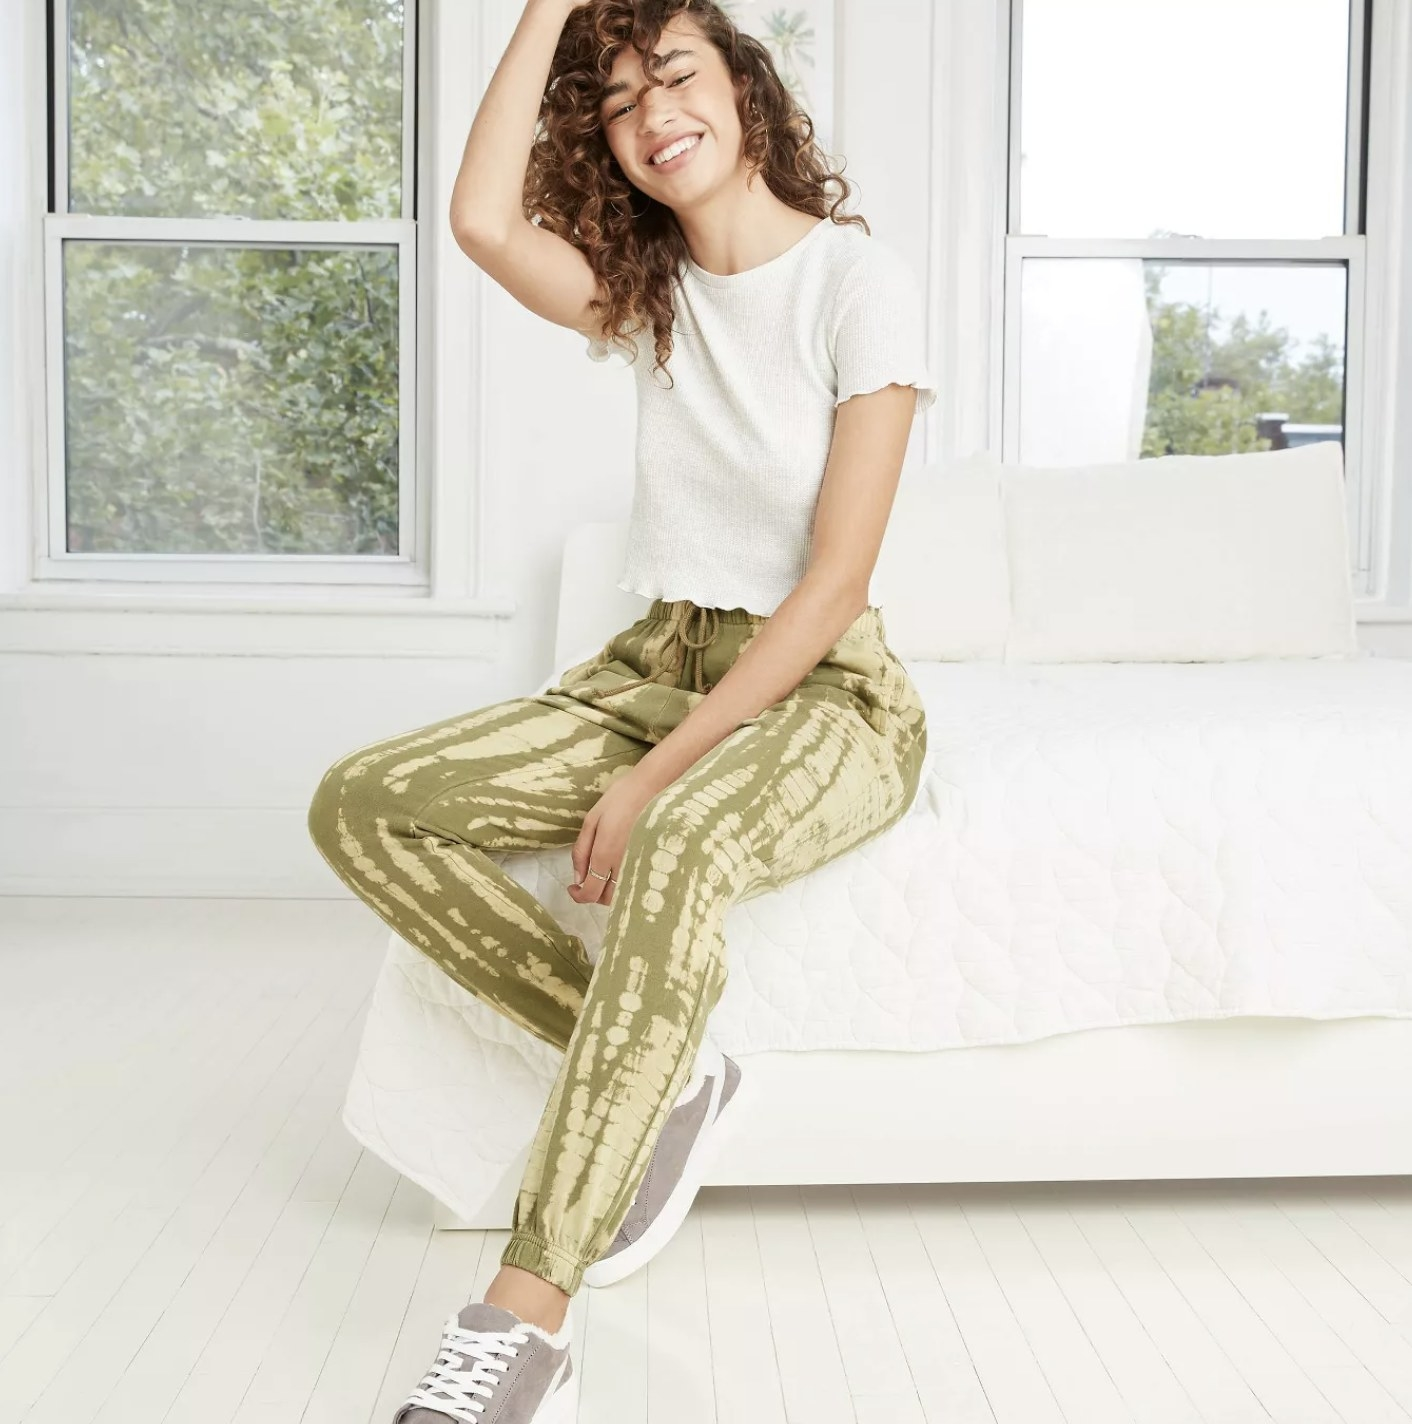 Model is wearing an green acid-wash patterned pair of joggers